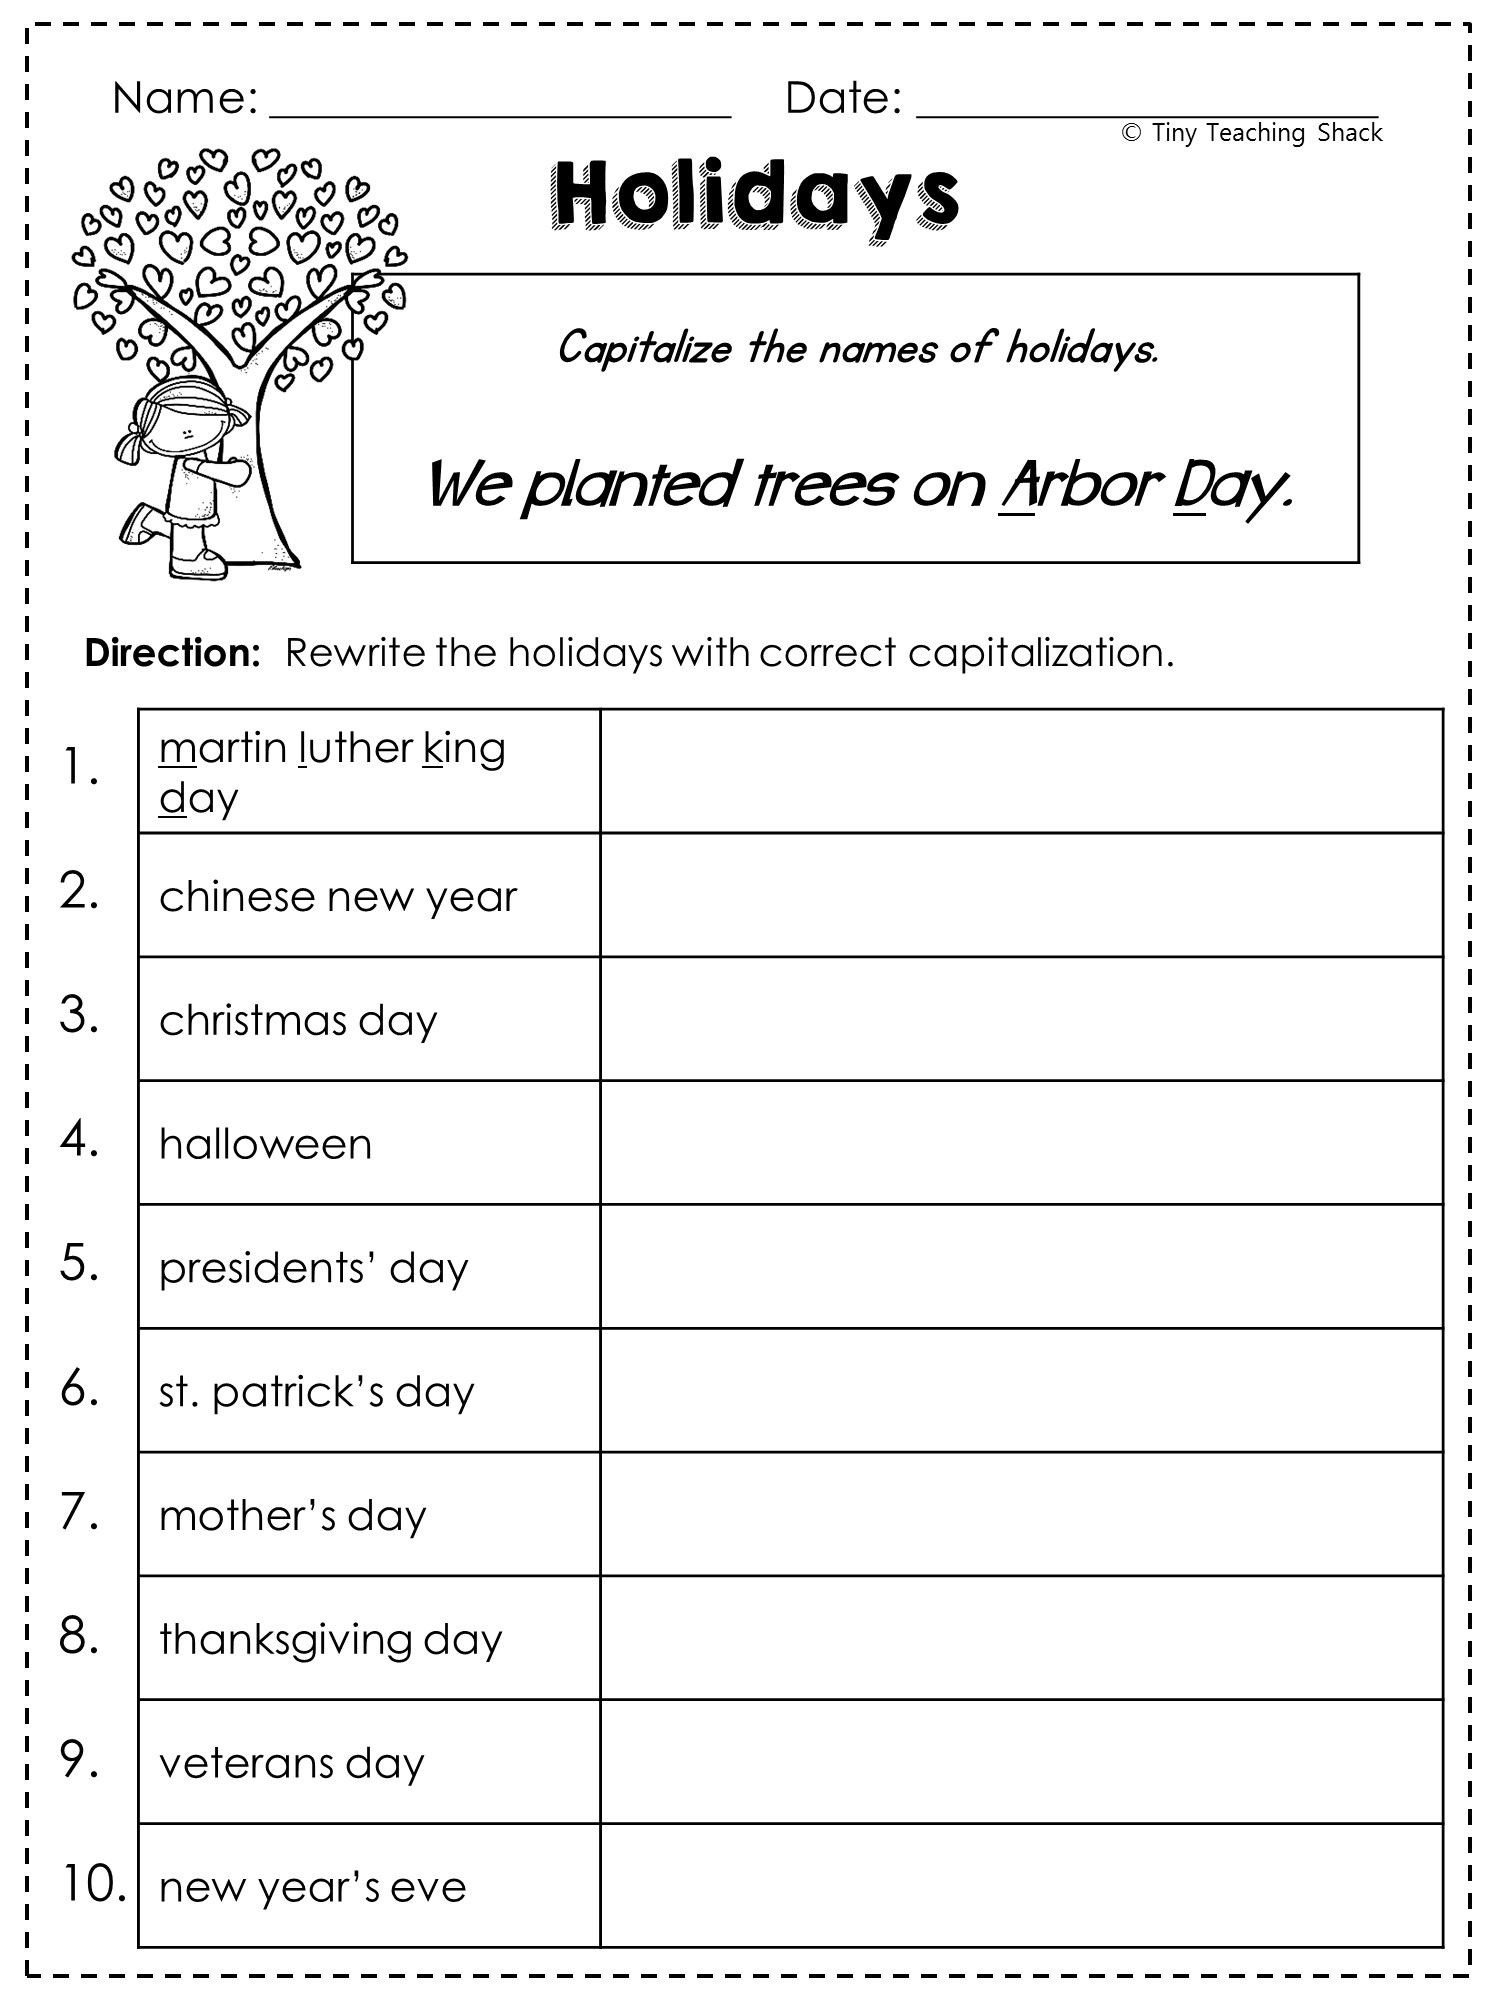 Free Printable Capitalization Worksheets 2nd Grade Language Arts and Grammar Practice Sheets Freebie